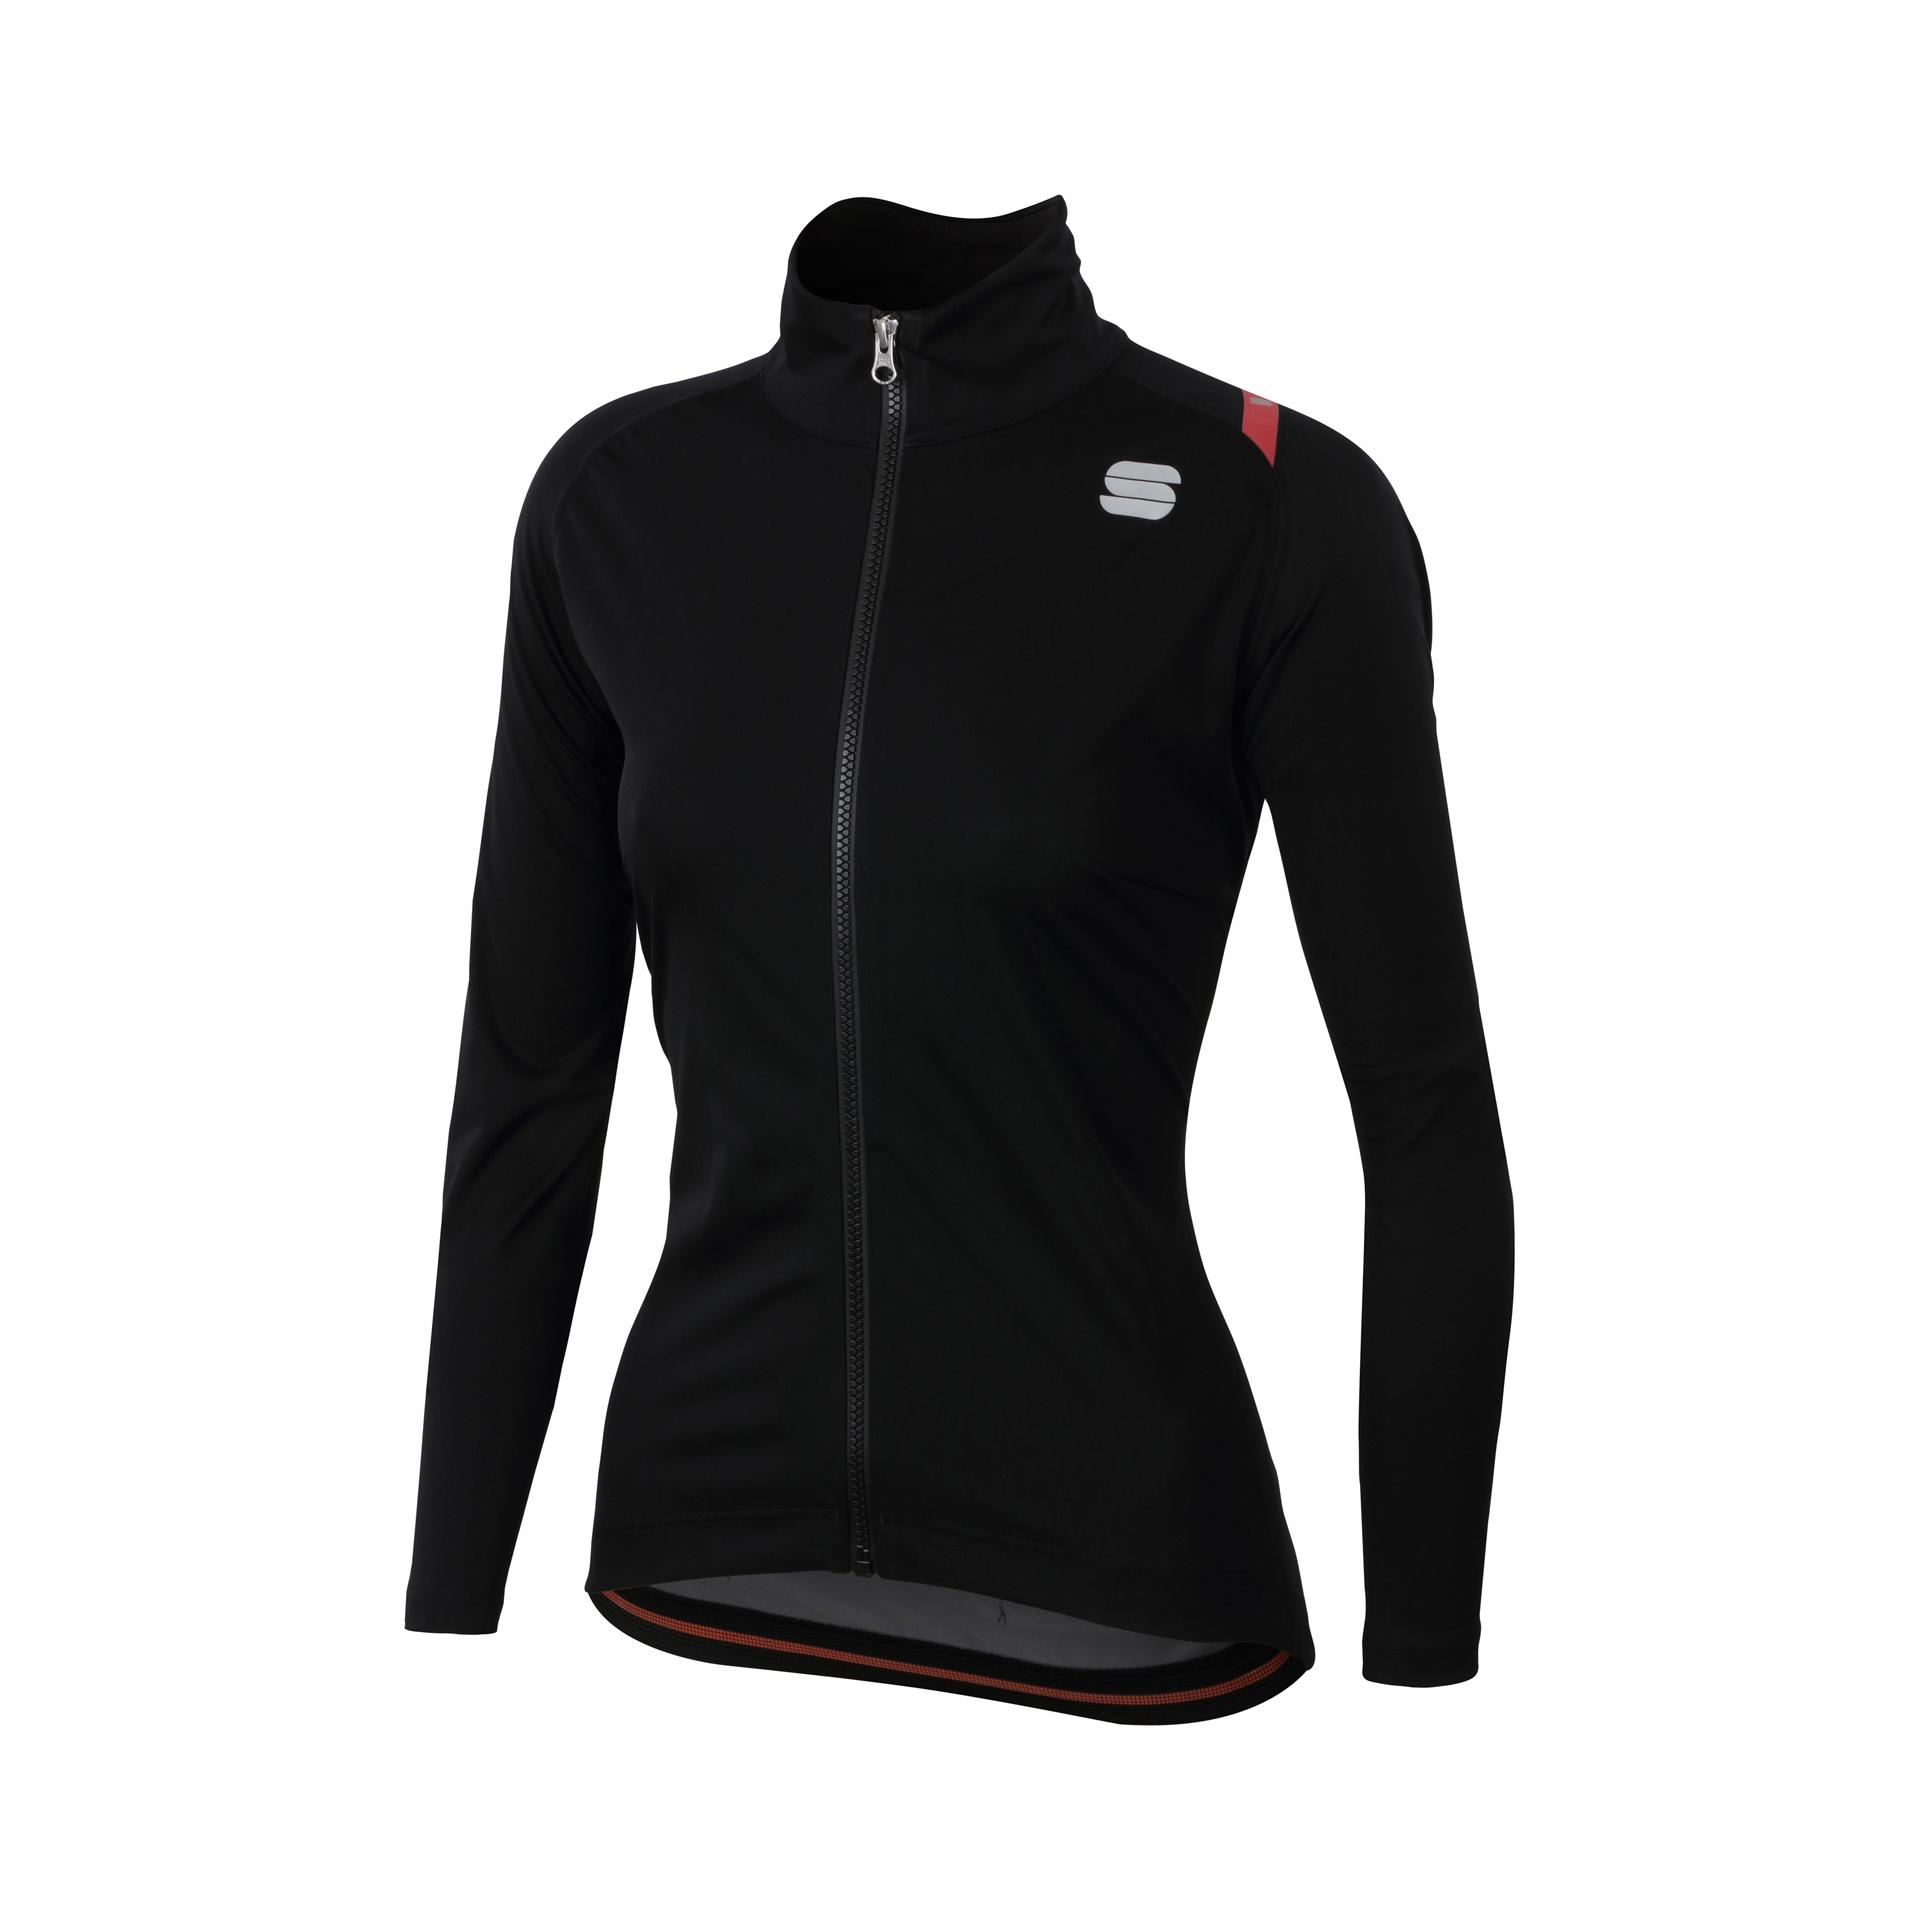 Sportful Fietsjack Dames Zwart / SF Fiandre Ultimate 2 Ws Woman Ja-Black